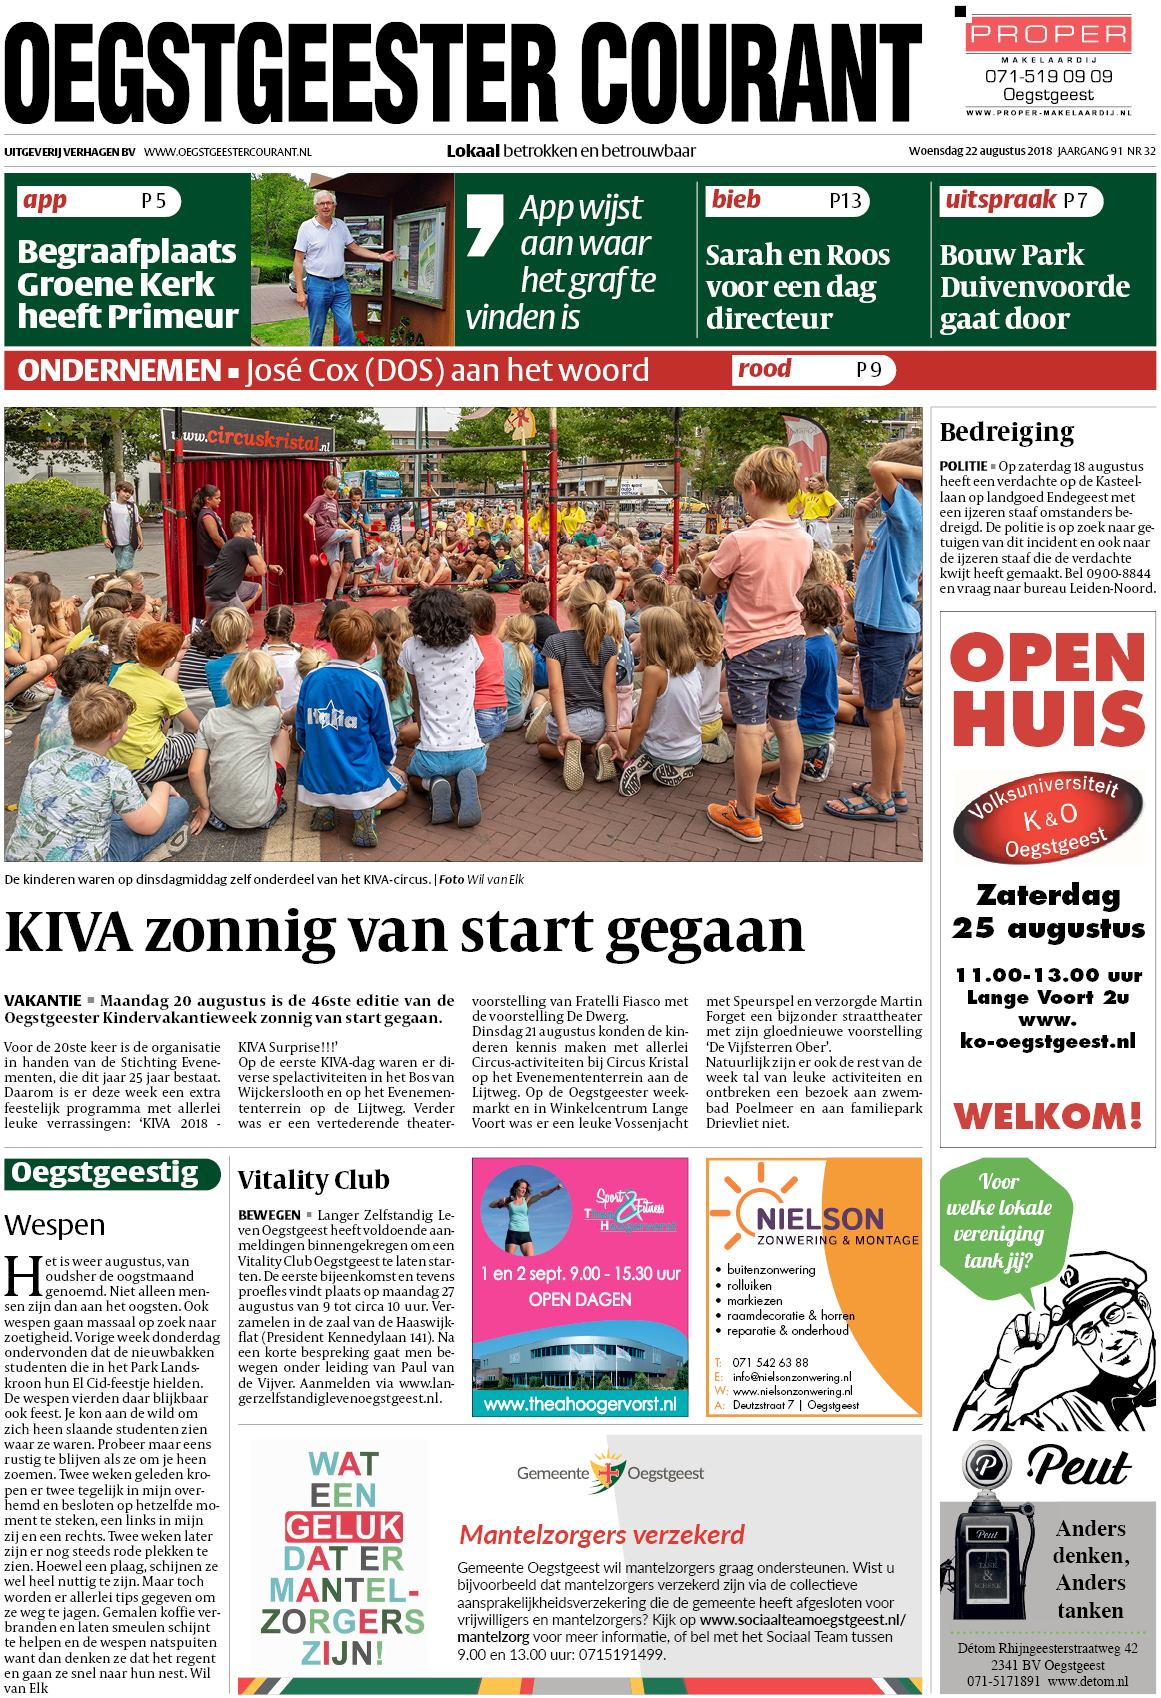 b5aee855f32 Oegstgeester Courant 22 augustus 2018